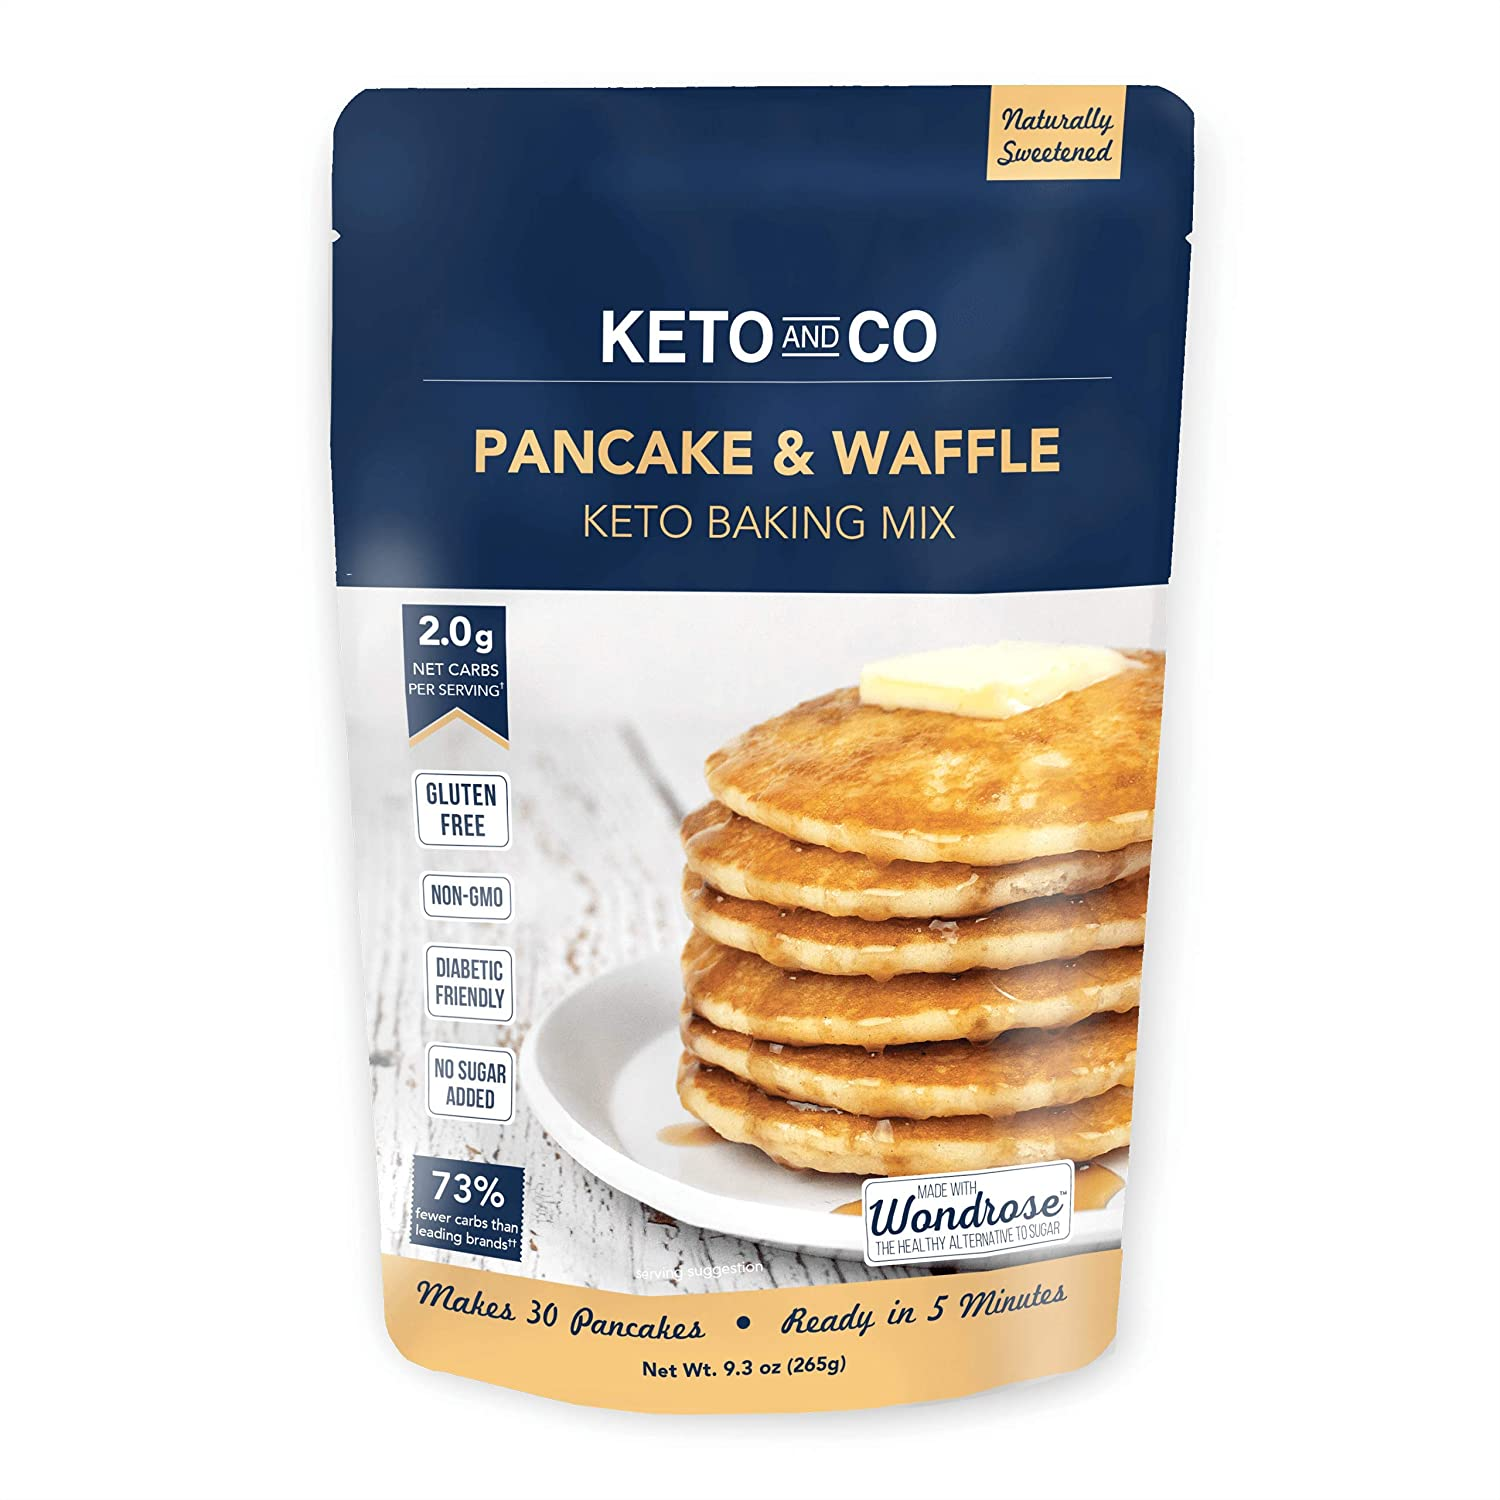 B07QZSFQ59 Keto Pancake & Waffle Mix by Keto and Co | Fluffy, Gluten Free, Low Carb Pancakes | 2.0g Net Carbs per Serving | No Sugar Added | Diabetic & Keto Friendly | Makes 30 Pancakes 81Y1hHM8rZL